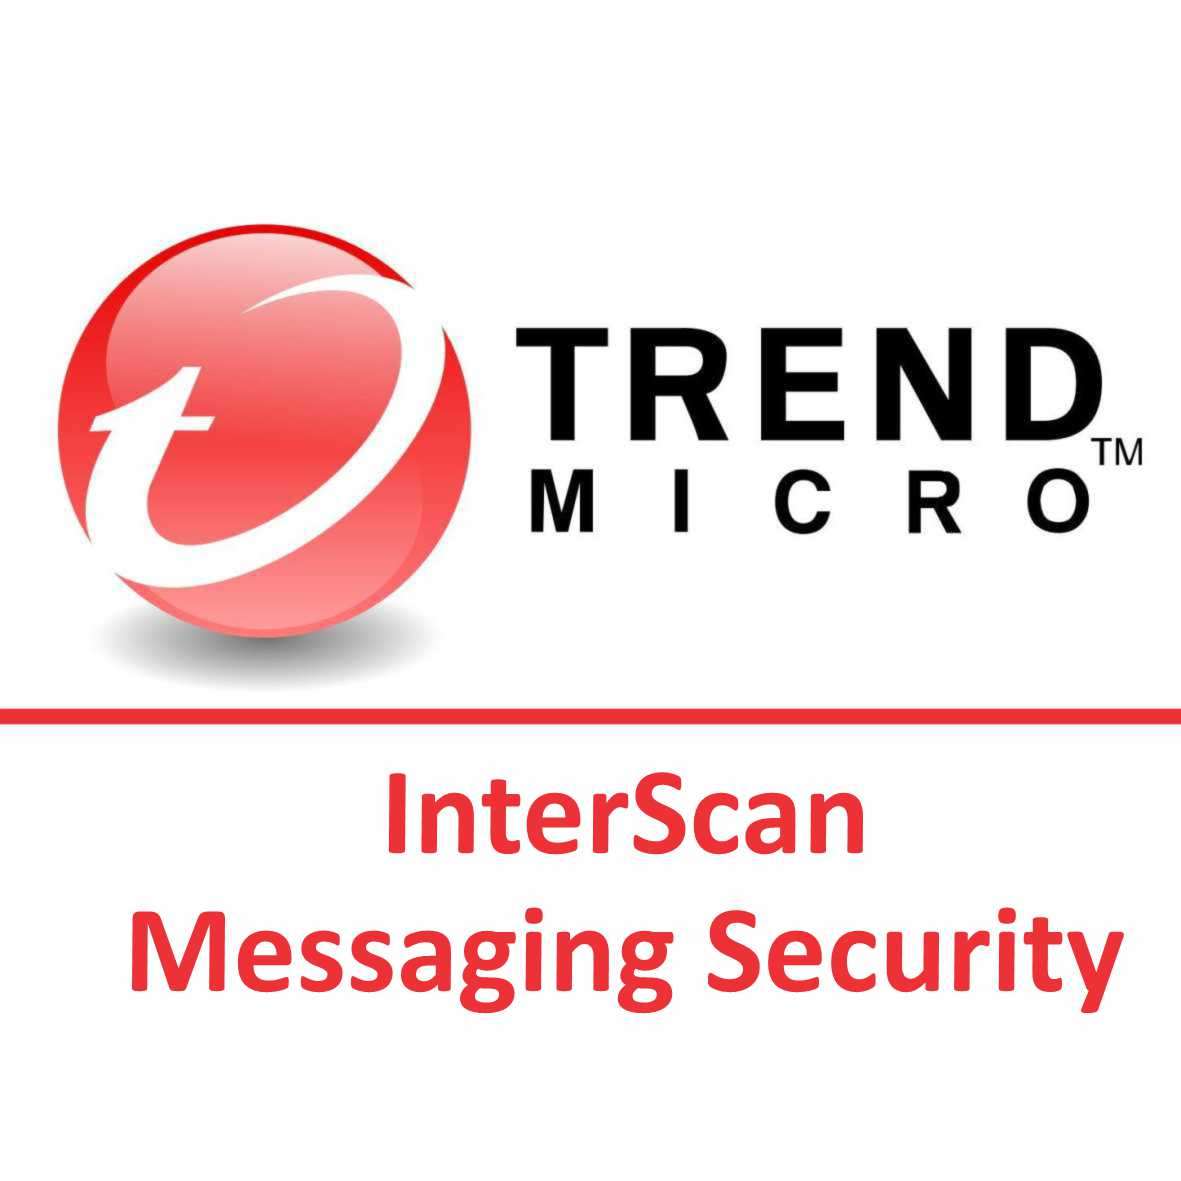 InterScan Messaging Security